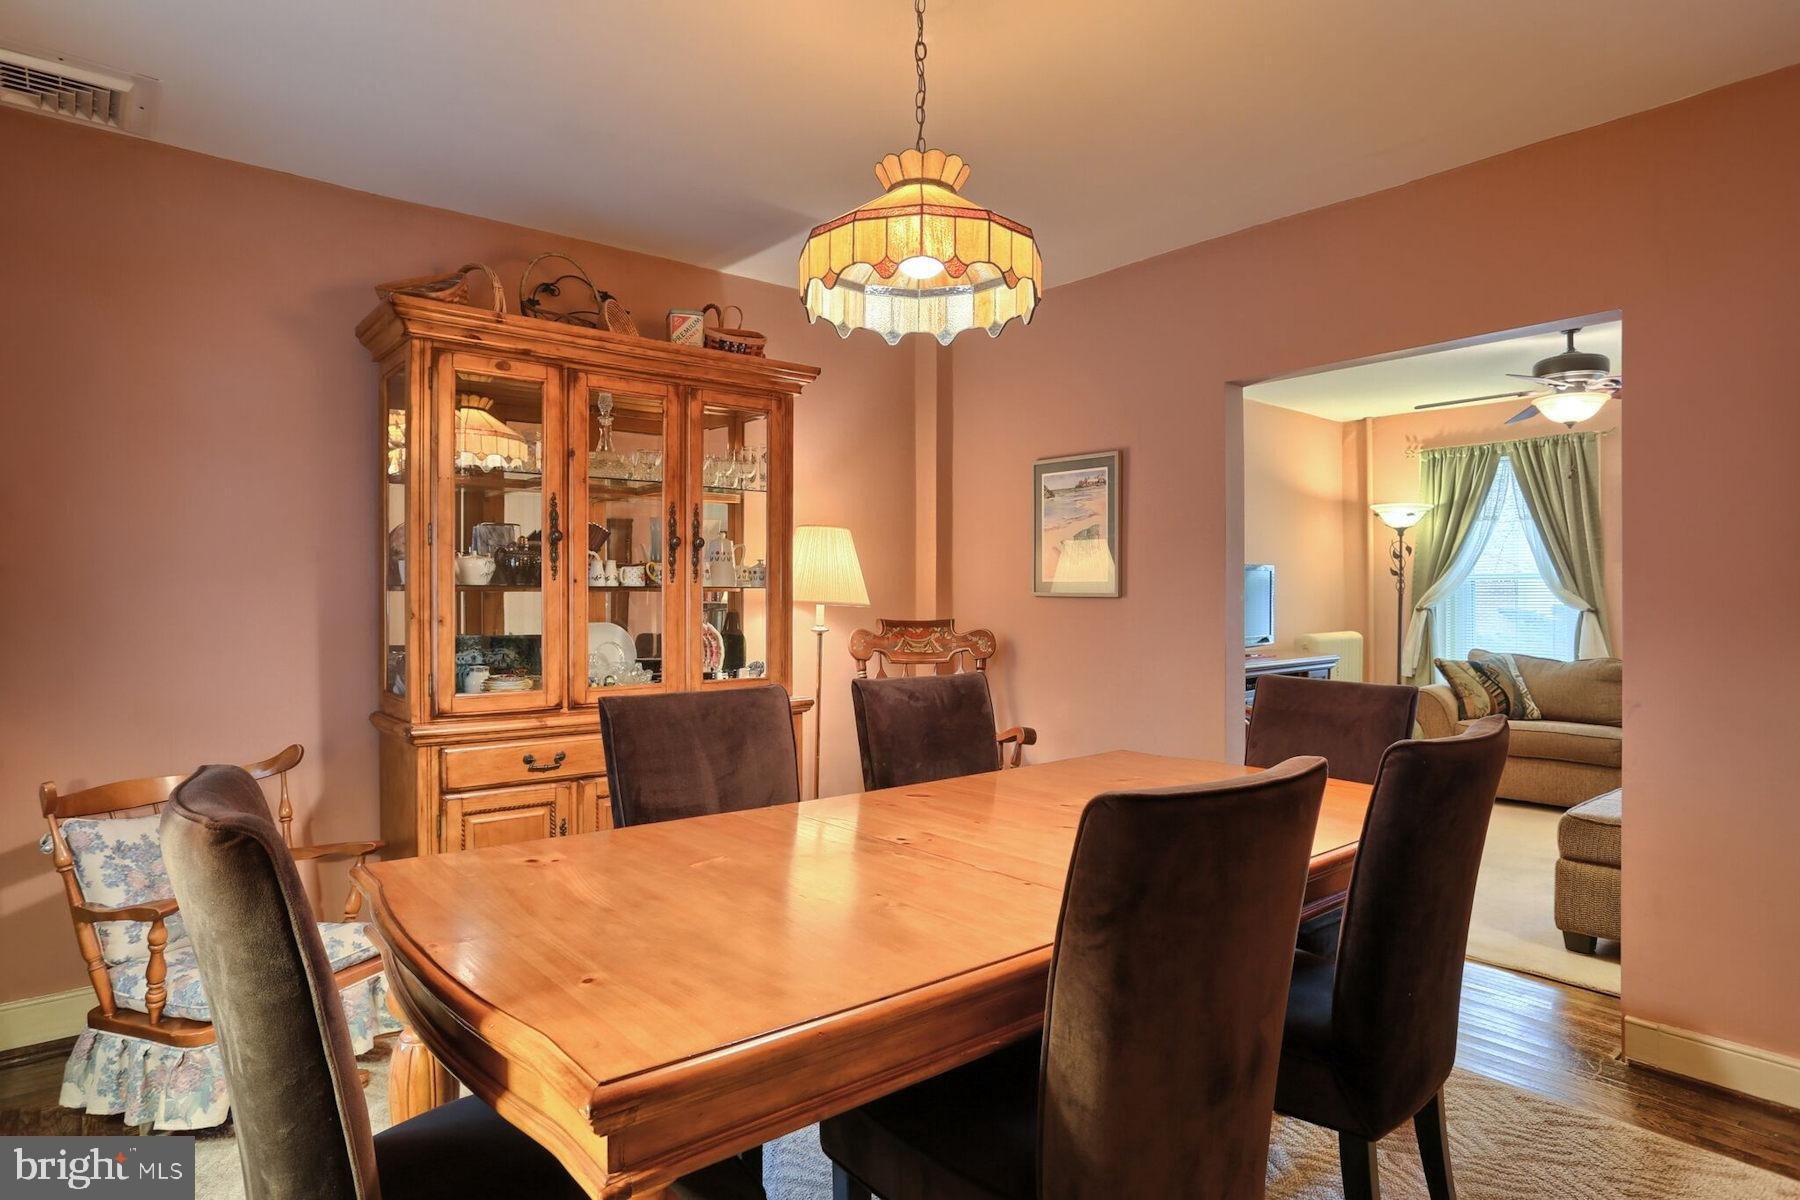 2nd Floor Dining Room View 2